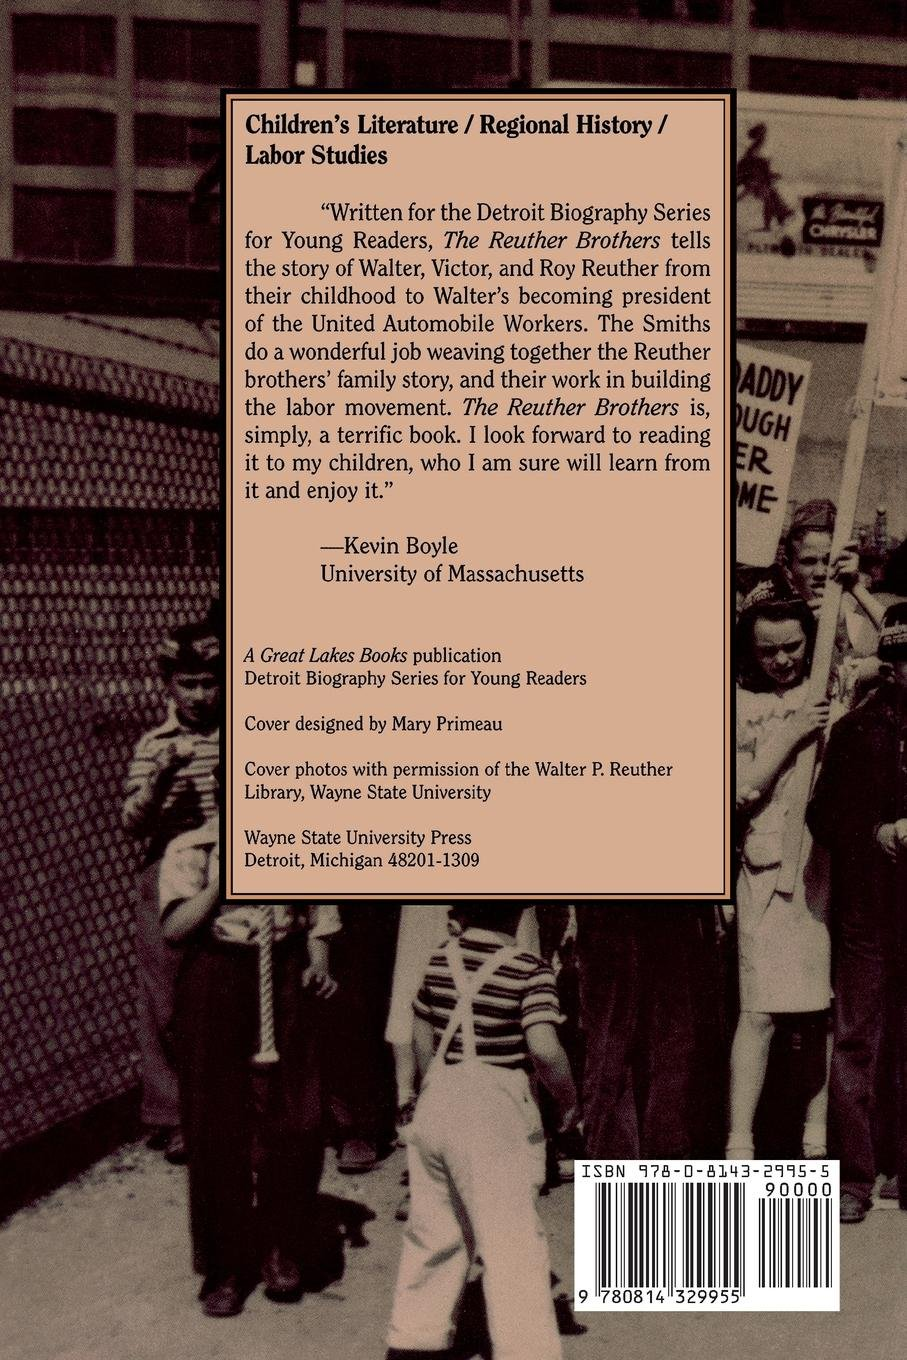 The Reuther Brothers: Walter, Roy, and Victor (Detroit Biography Series for Young Readers) by Brand: Wayne State University Press (Image #2)